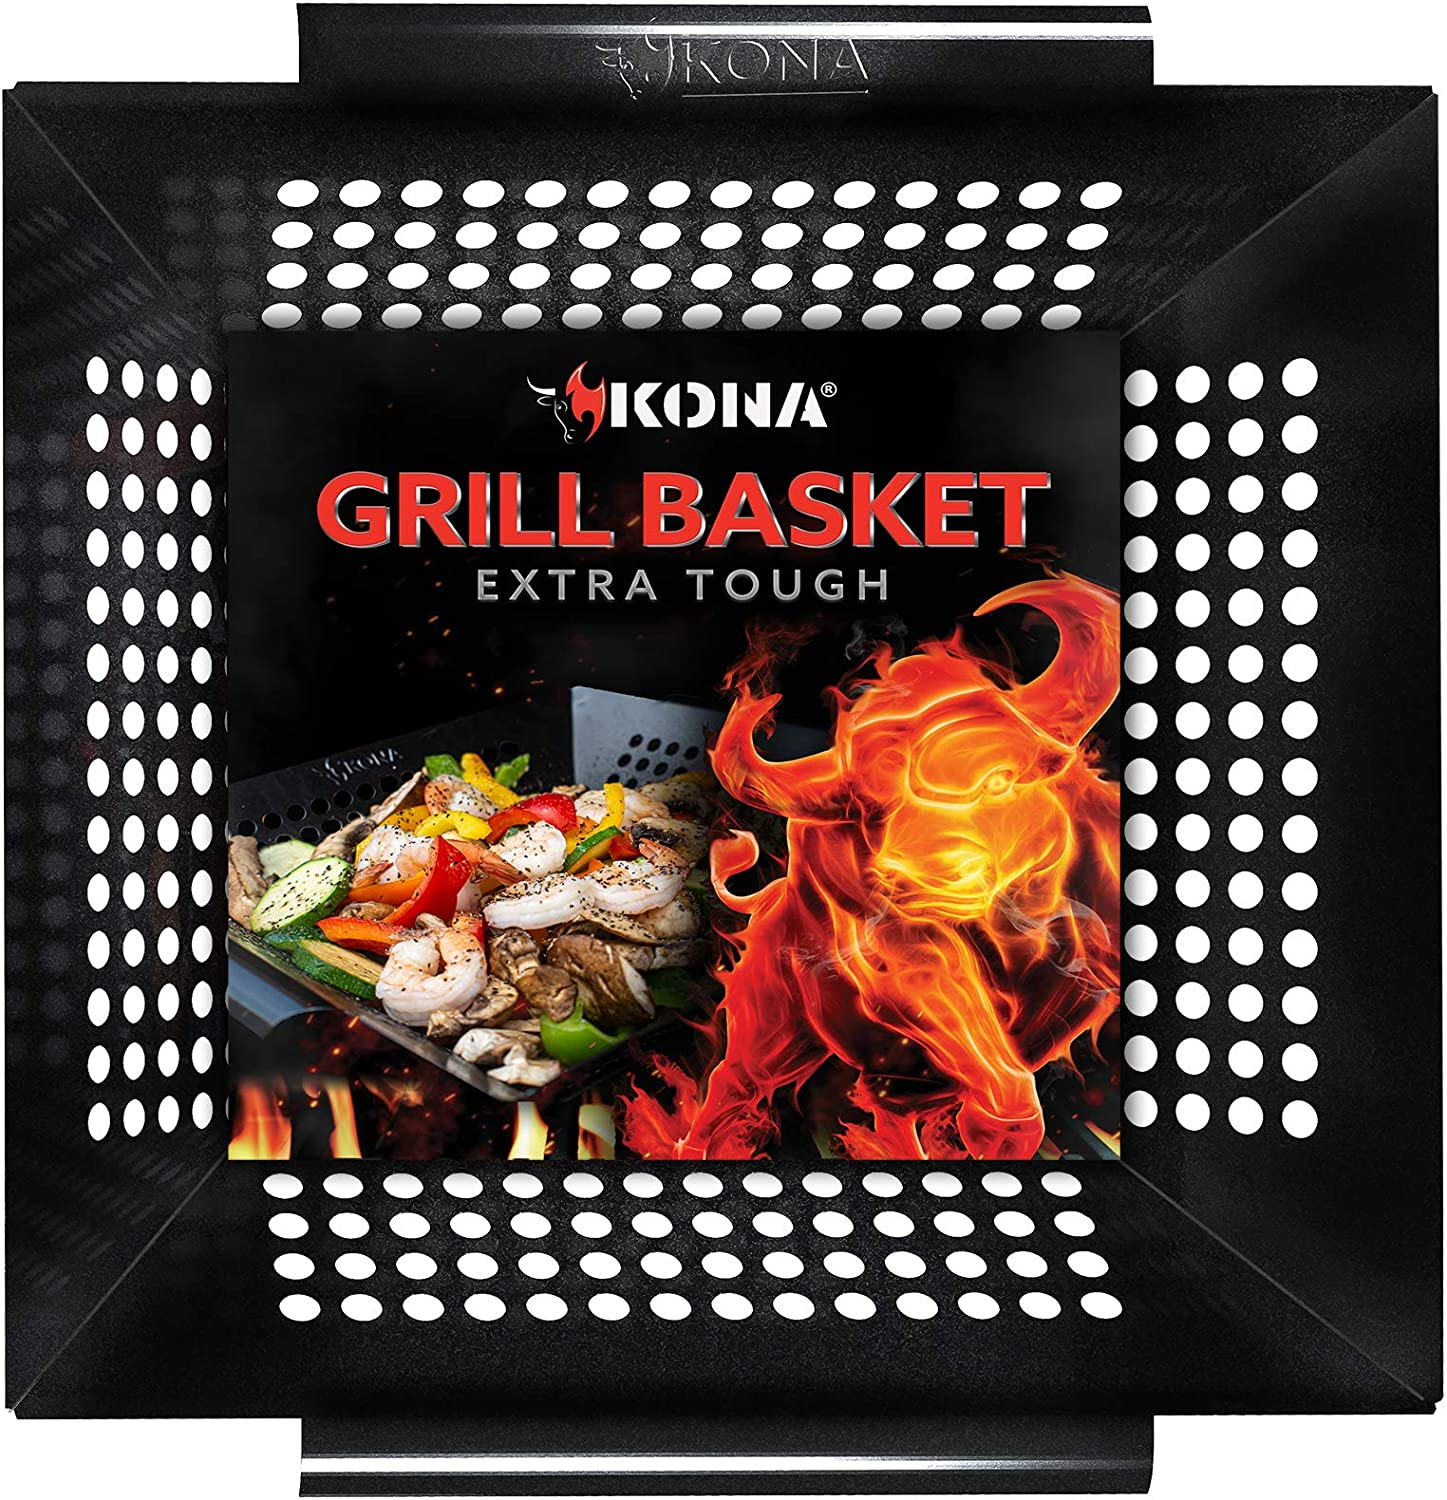 AGOOBO Grill Basket Kabob,or Pizza Stainless Steel BBQ Vegetable Grilling Basket for Grilling Veggies Meat Fish